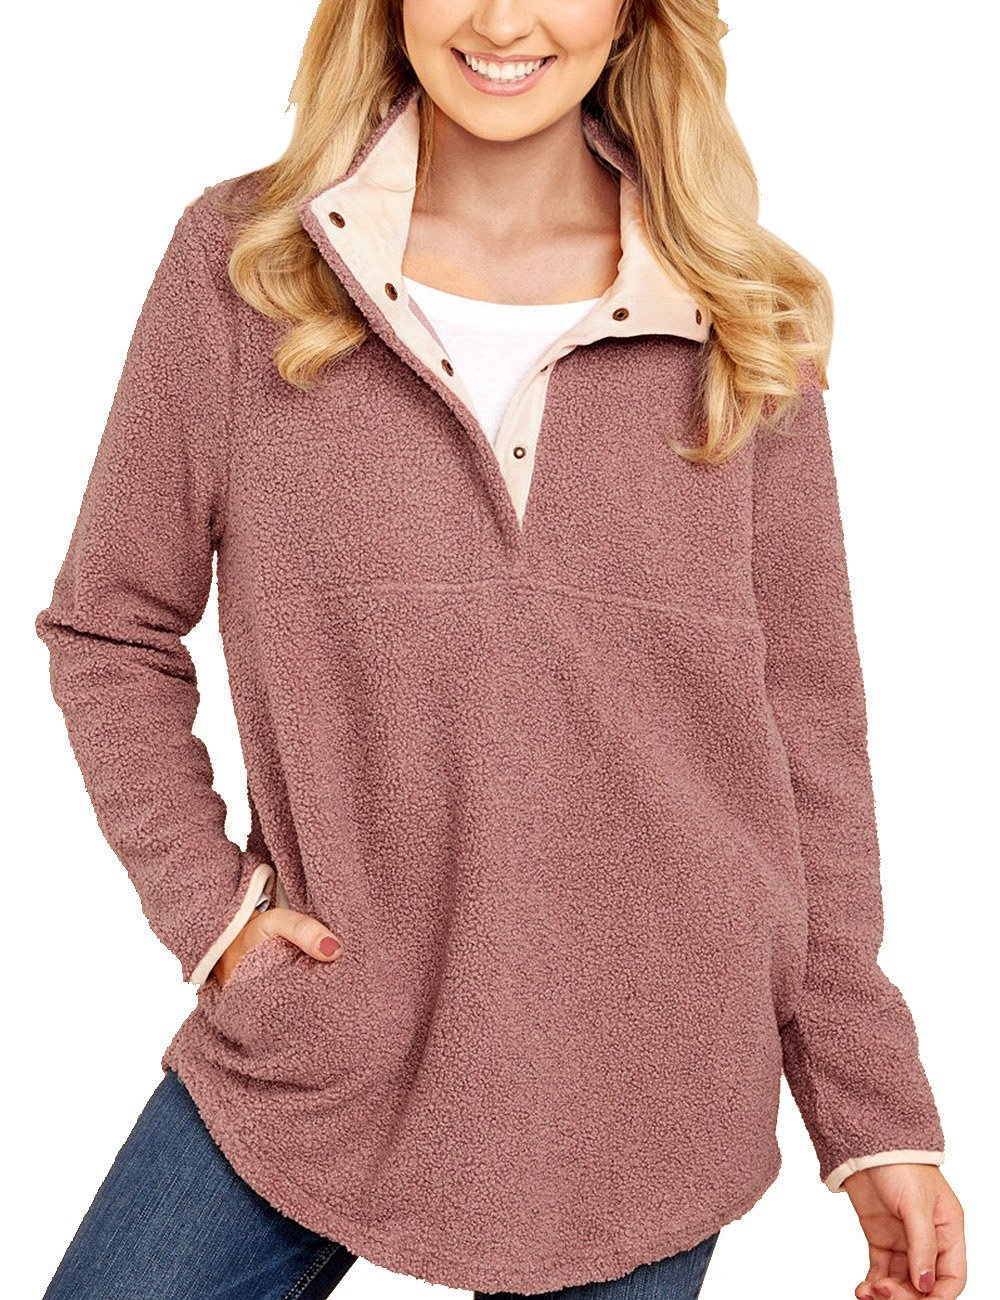 GRAPENT Women's Casual Long Sleeves Stand Collar Buttons Pockets Fleece Pullover Pink Size XL ( Fit US 16 - US 18 )